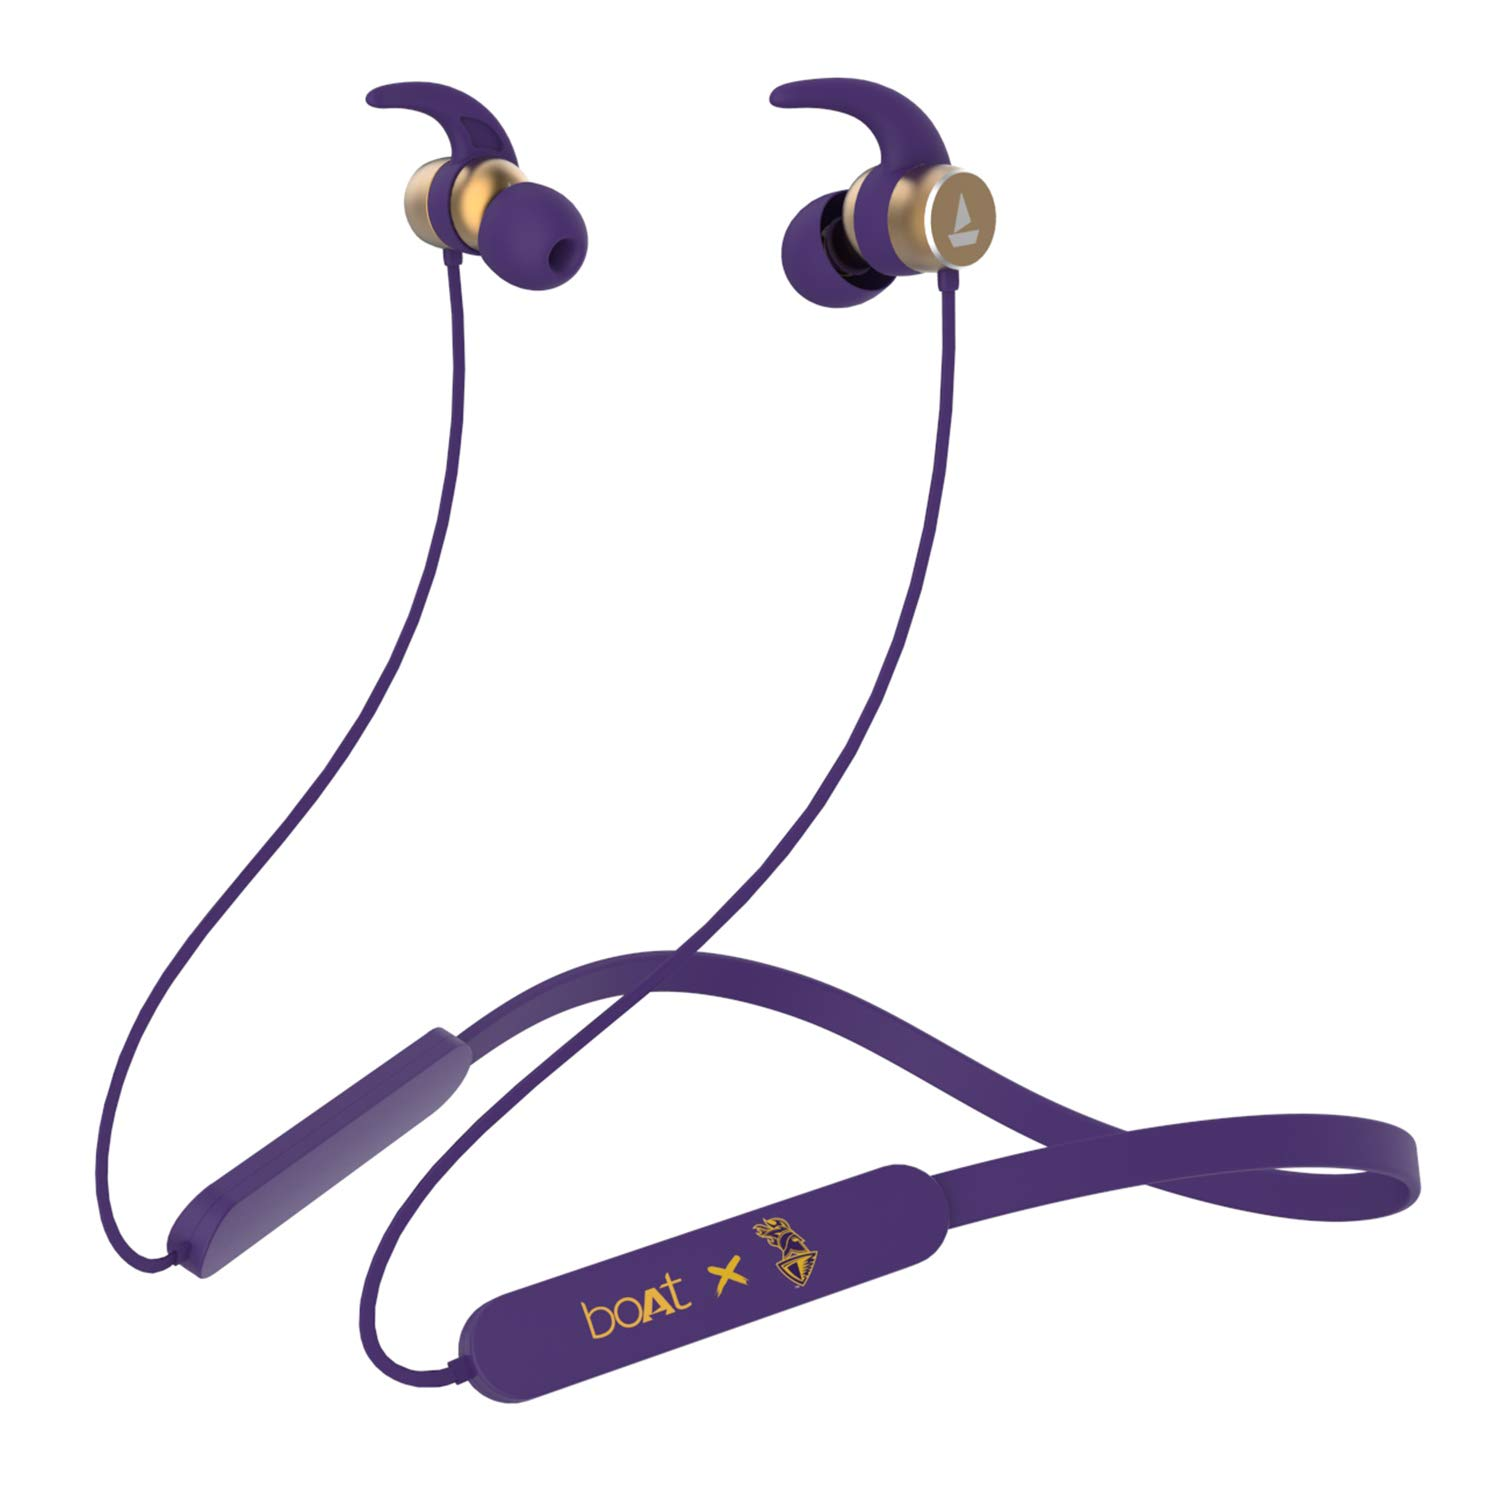 boAt Rockerz 255 Kolkata Knight Riders Edition Wireless Headset with Super Extra Bass, IPX5 Water and Sweat Resistant, Qualcomm Chipset and Upto 6H Playback (KKR Thunder Purple)